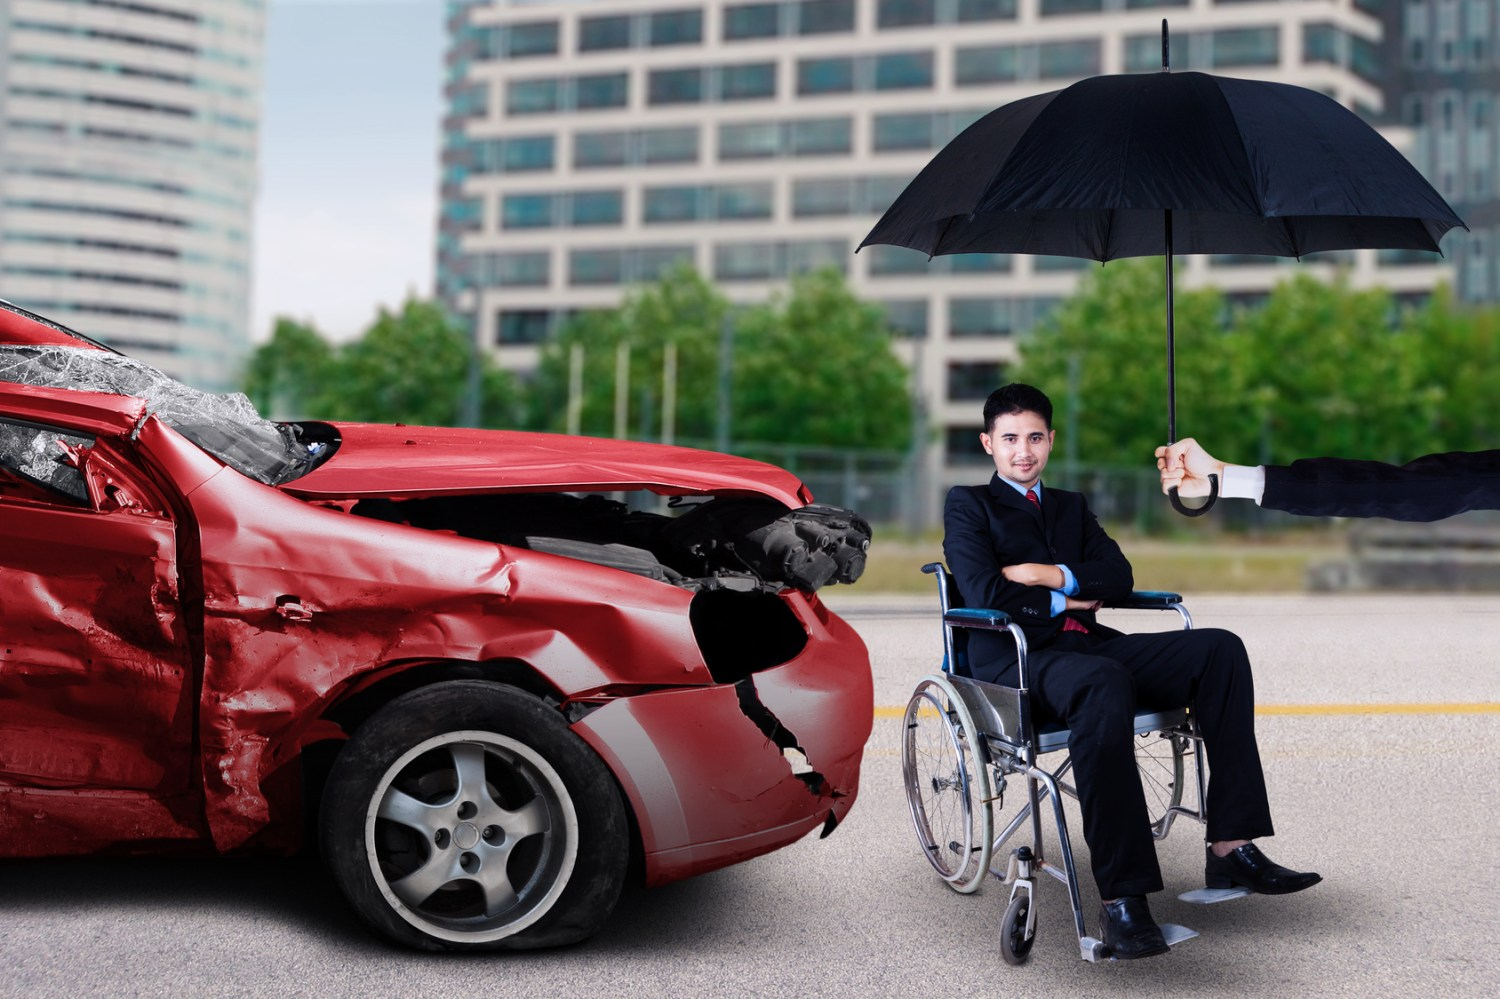 What is personal injury protection and what does it cover